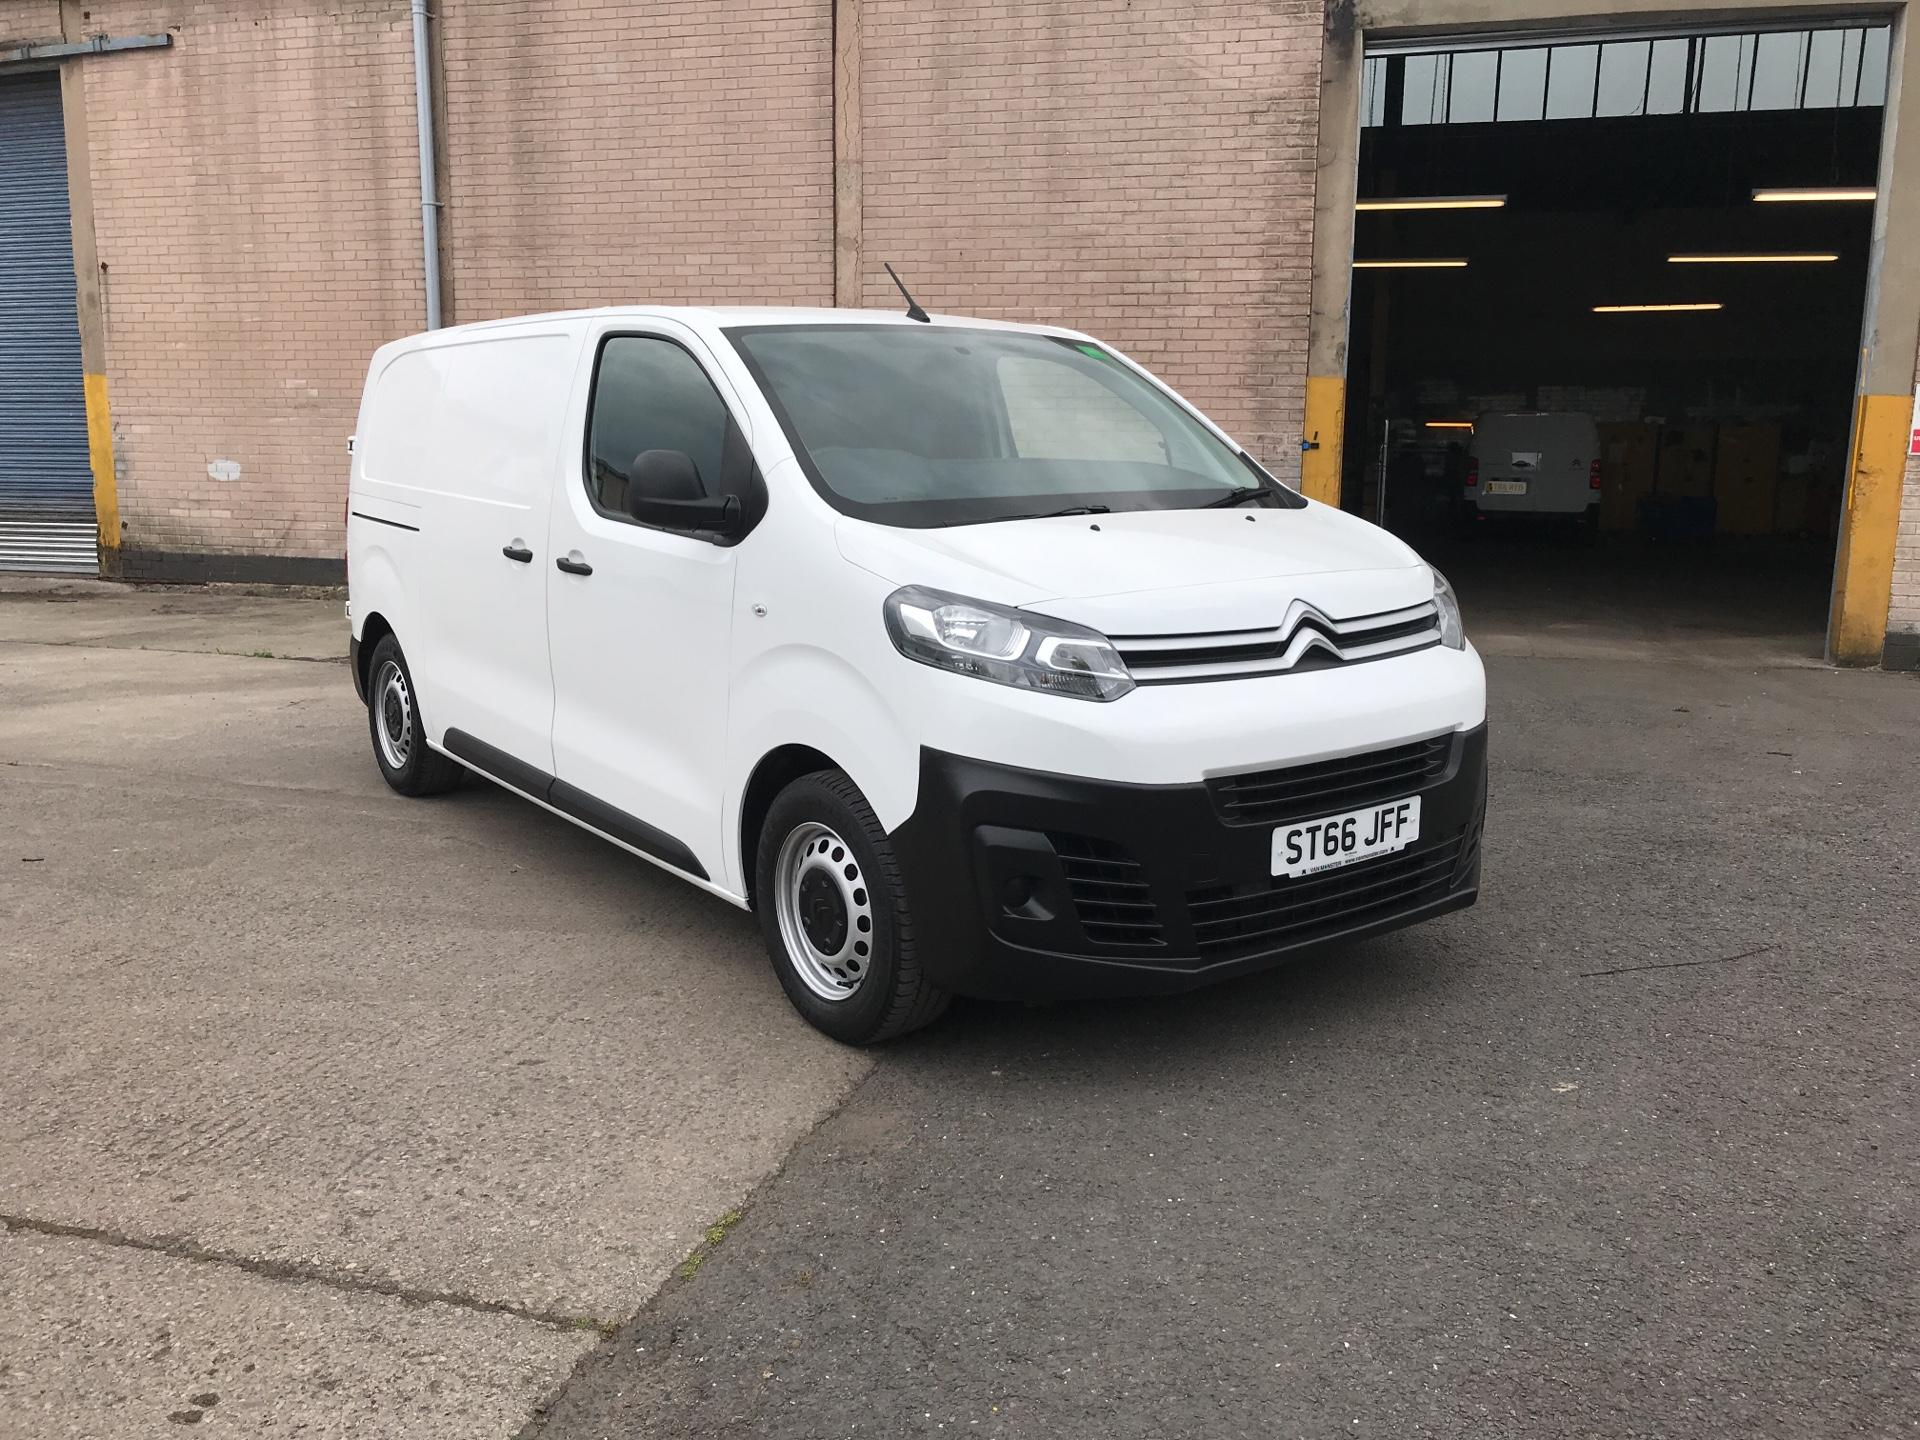 2016 Citroen Dispatch M DIESEL 1000 1.6HDI BLUE 95PS VAN X (ST66JFF)